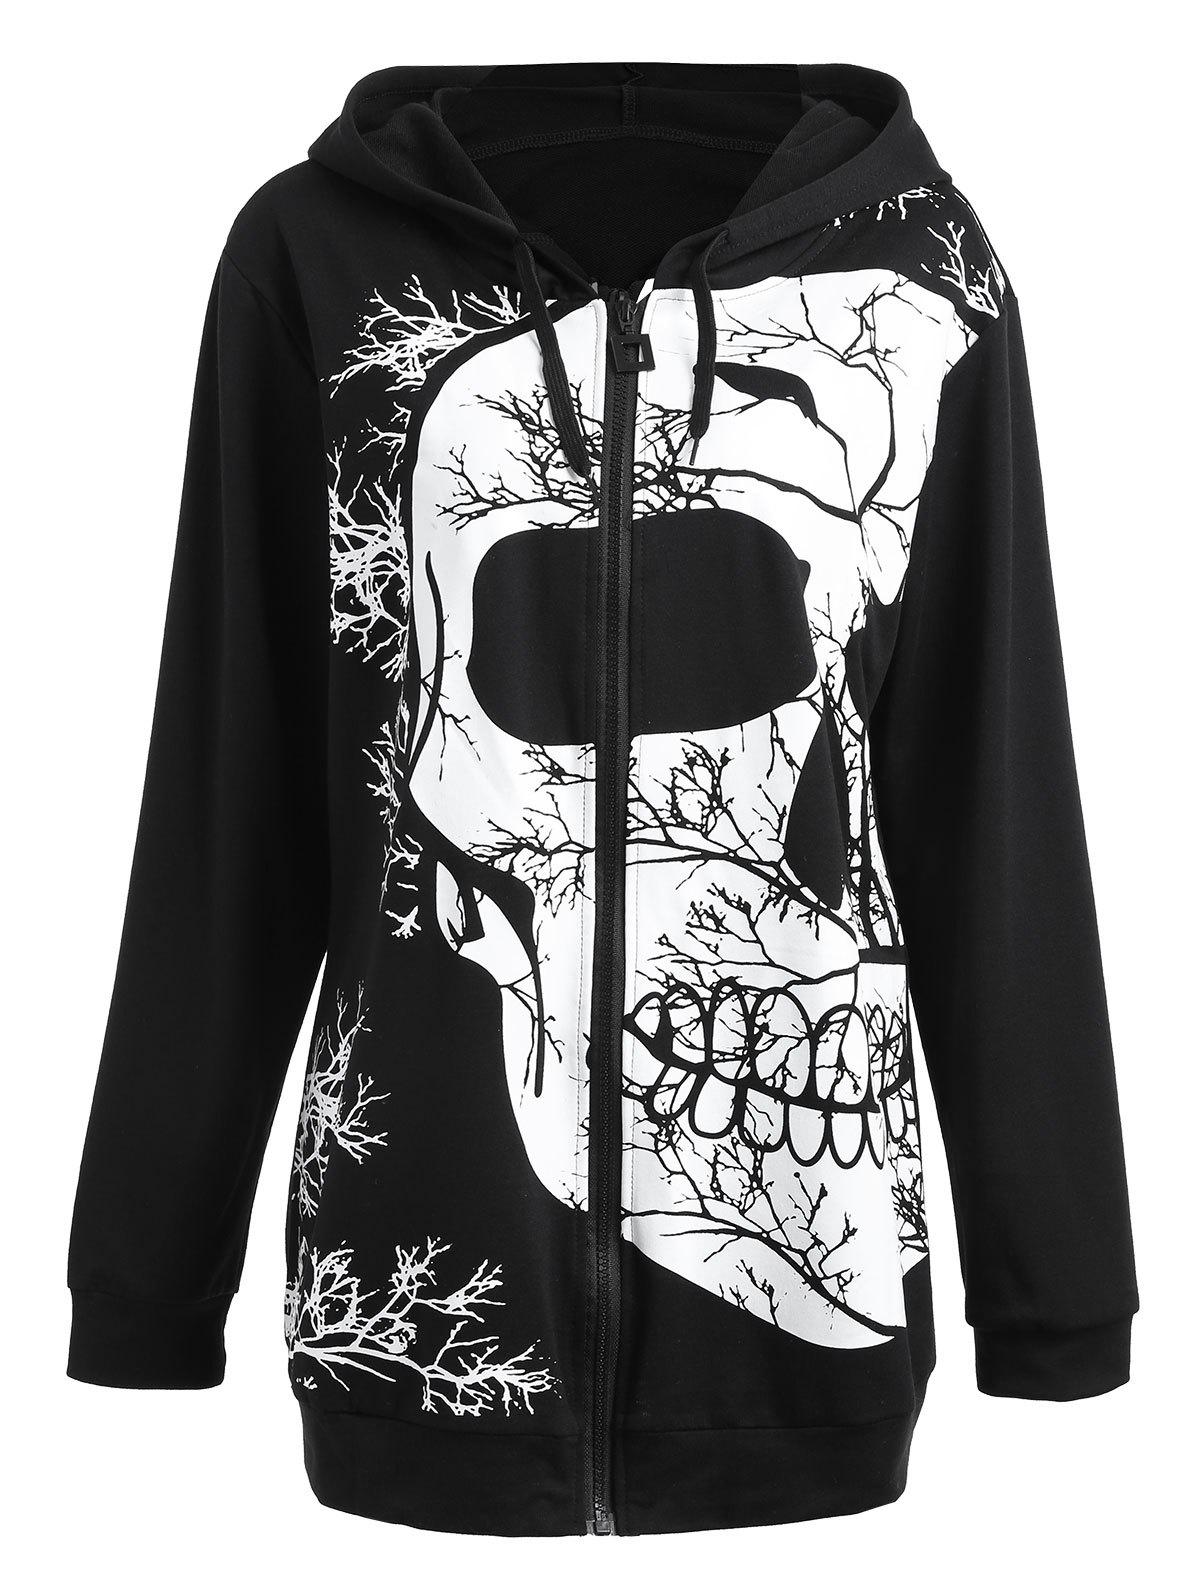 Zip Plus Size Skull Halloween HoodieWOMEN<br><br>Size: XL; Color: BLACK; Material: Cotton Blend,Polyester; Shirt Length: Long; Sleeve Length: Full; Style: Fashion; Pattern Style: Plant,Print,Skulls; Season: Fall,Winter; Weight: 0.5200kg; Package Contents: 1 x Hoodie;